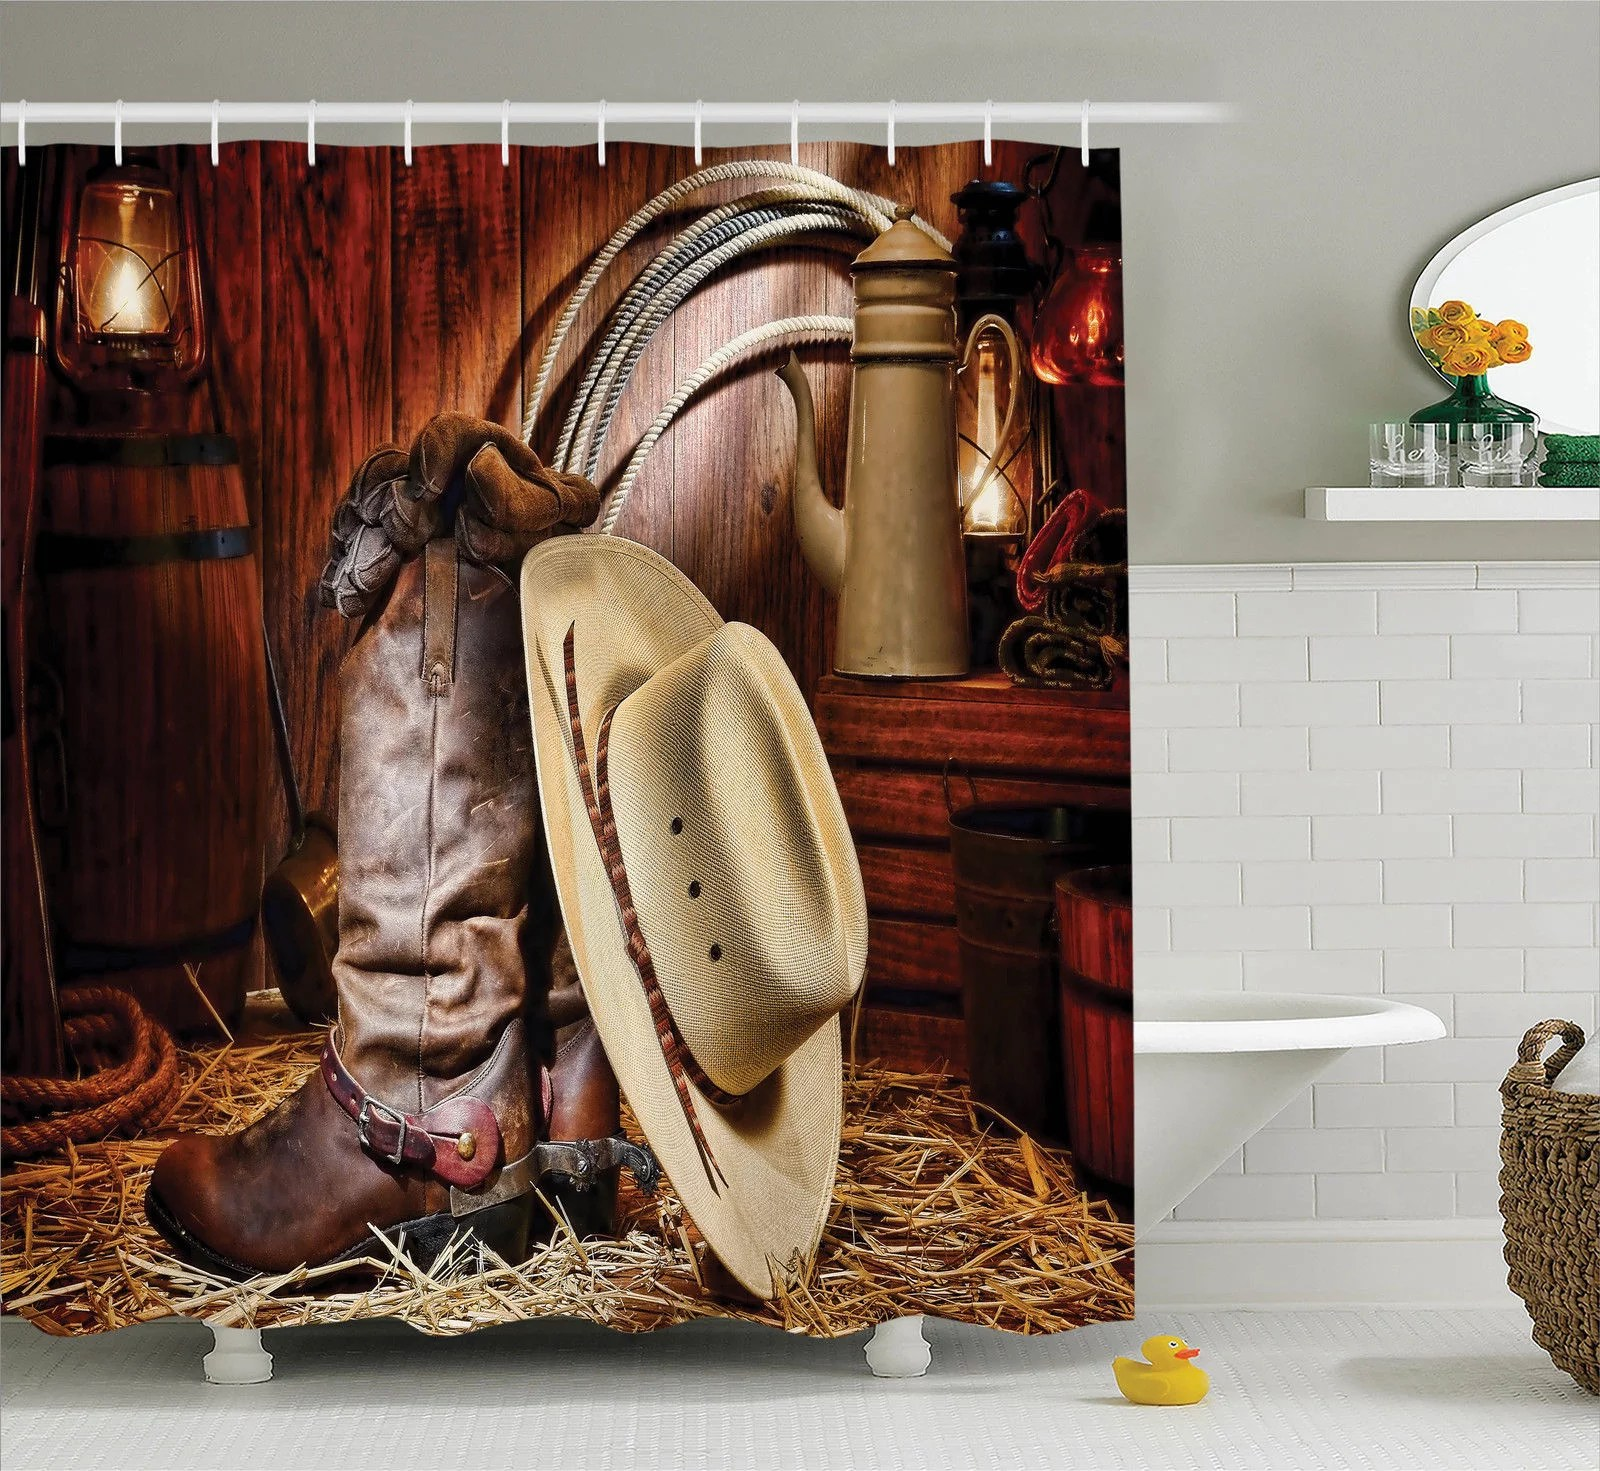 Western Decor Shower Curtain Set Authentic American West Rodeo Elements With Antique Ranching Supplies Retro Art Photo Bathroom Accessories 69w X 70l Inches By Ambesonne Walmart Com Walmart Com